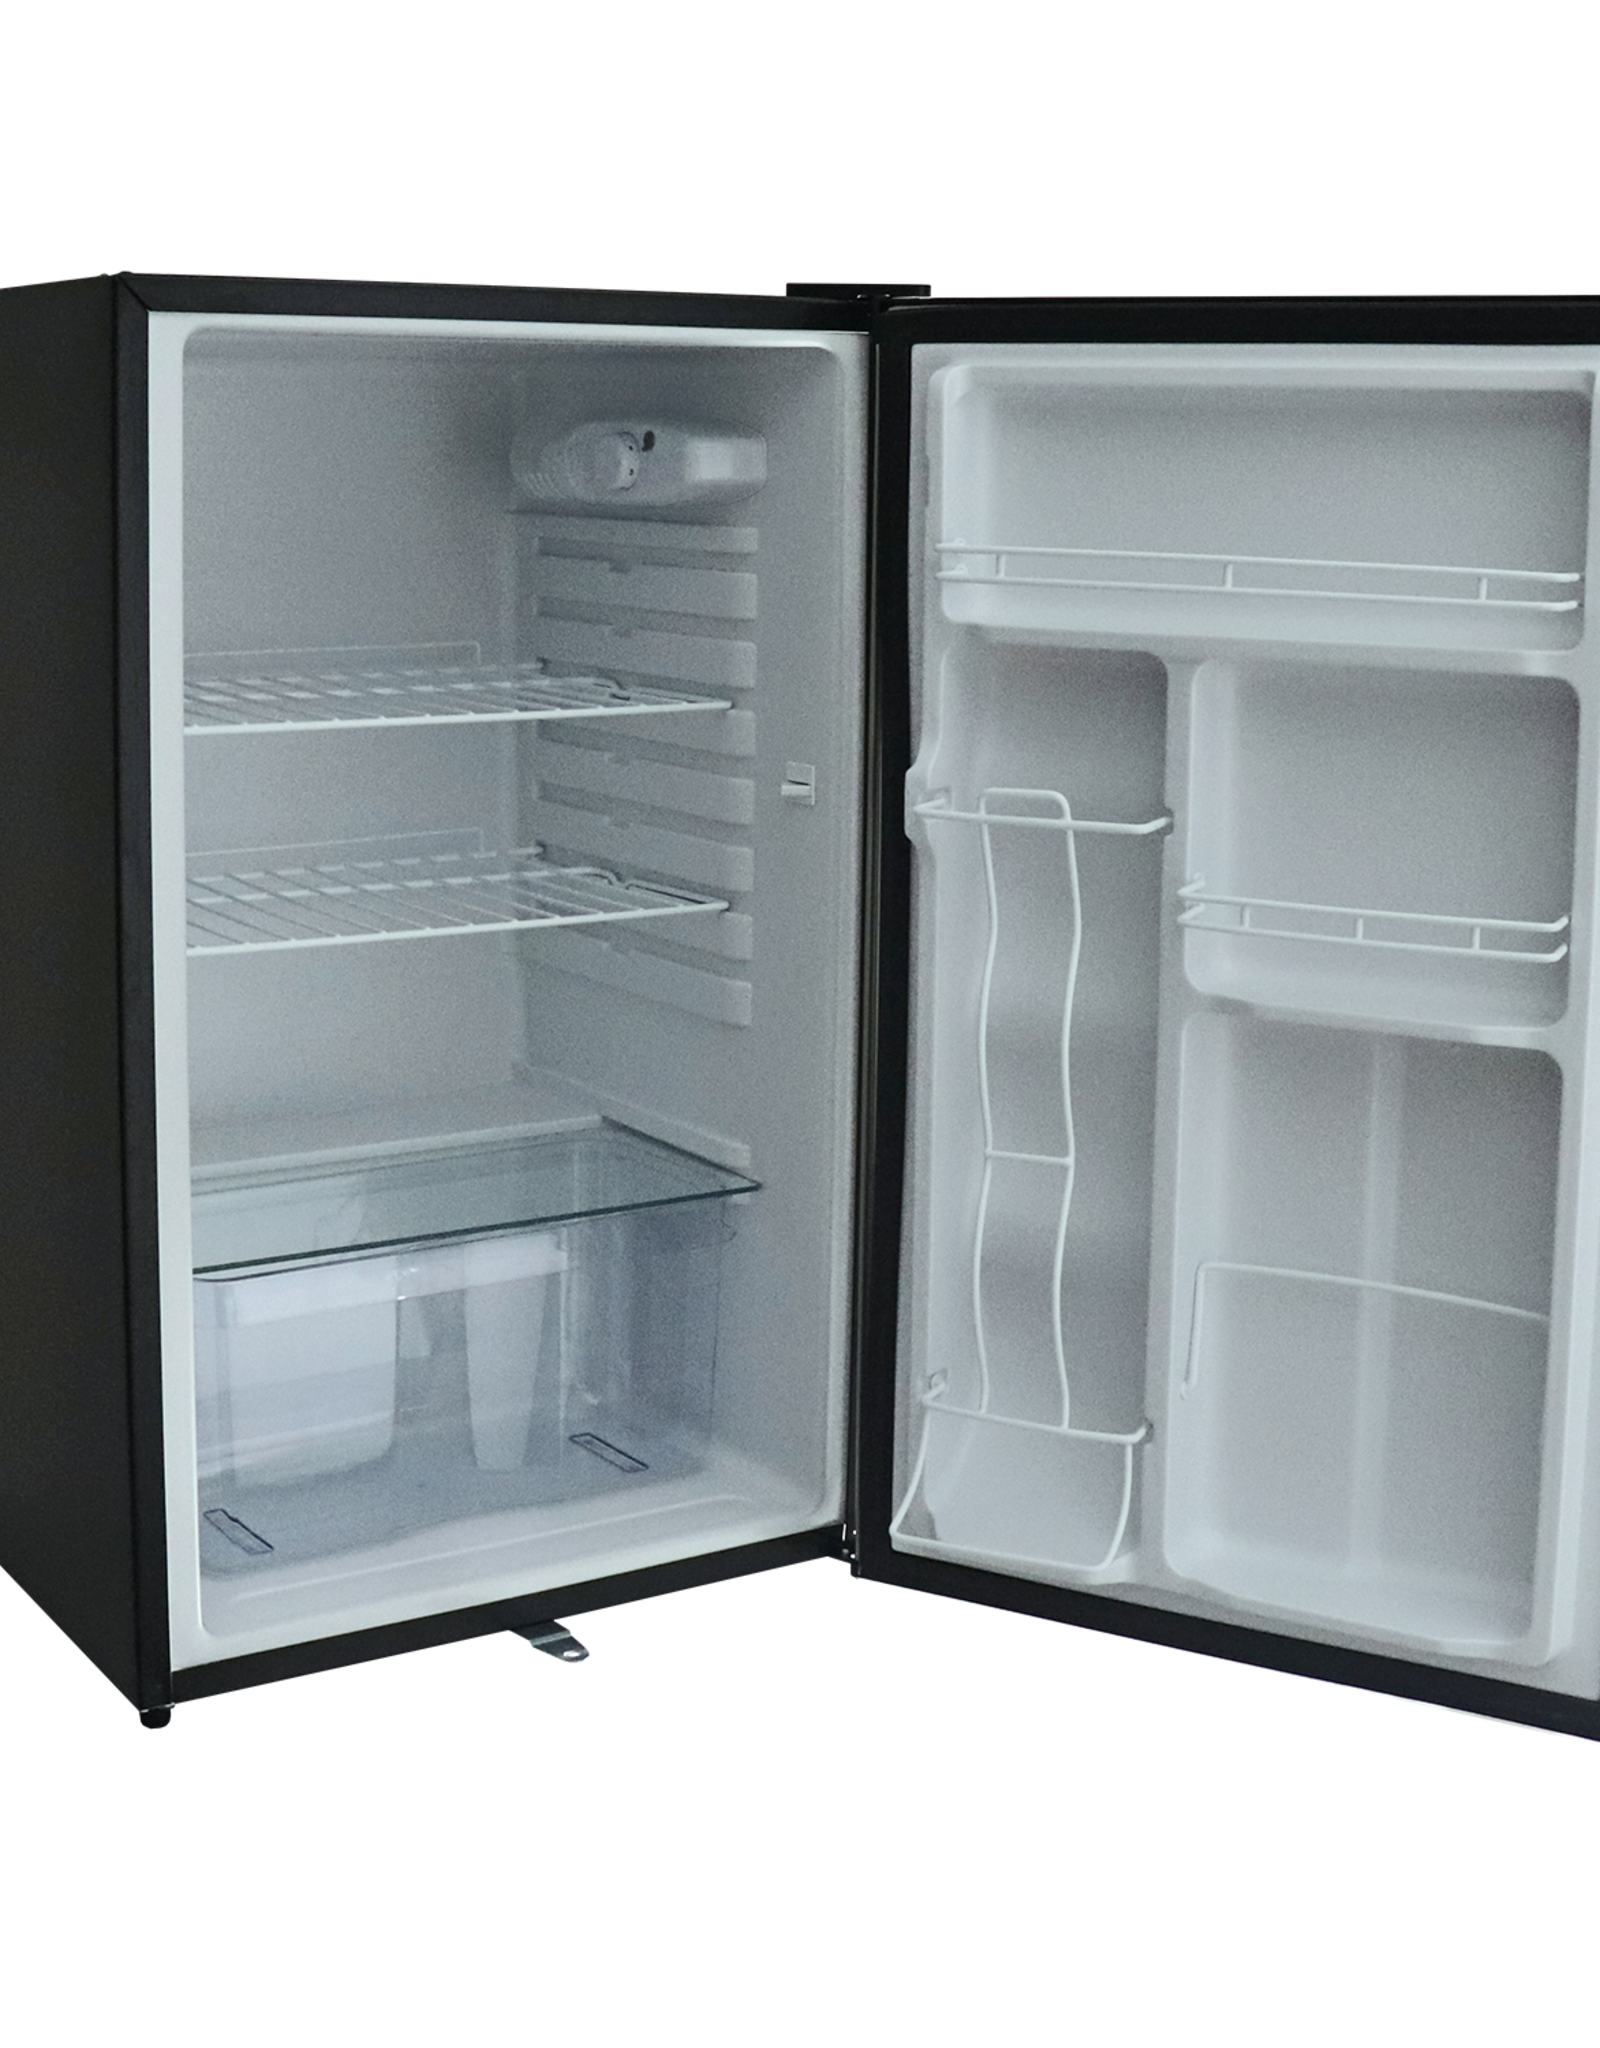 Renaissance Cooking Systems Renaissance Cooking Systems Refrigerator - 304 SS Reversible Door w/lock - REFR1A